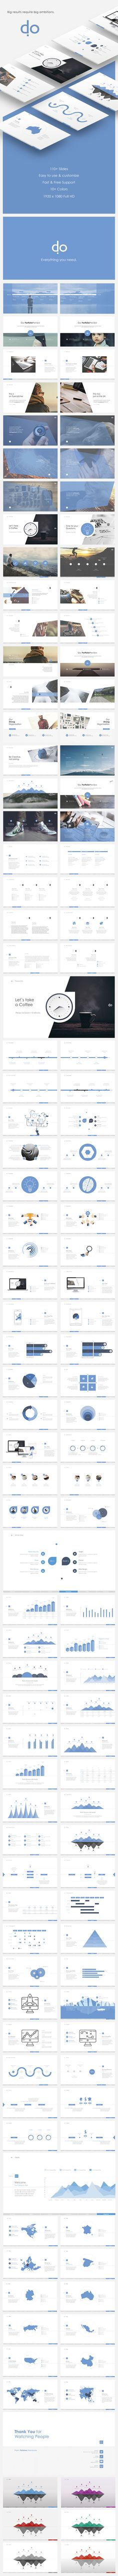 Marketing pro powerpoint presentation template powerpoint marketing pro powerpoint presentation template powerpoint presentation templates presentation templates and business presentation alramifo Gallery